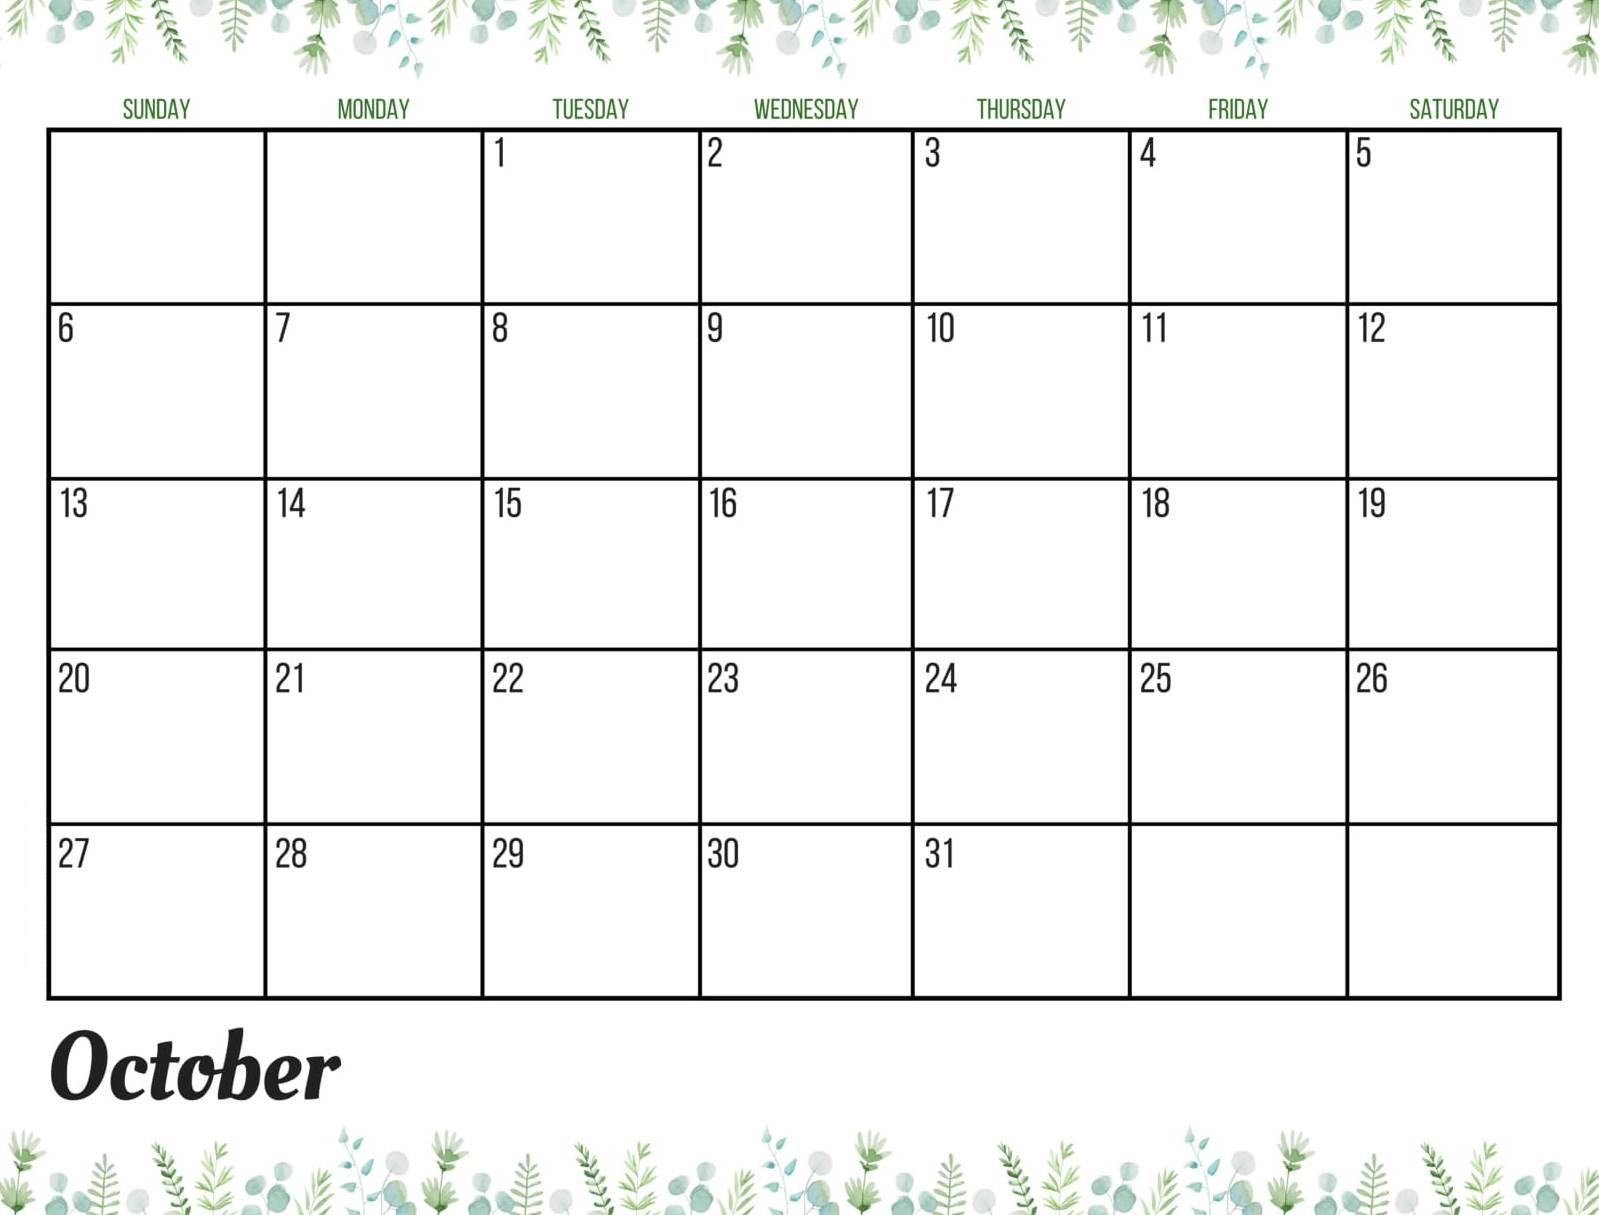 October 2019 Calendar UK National Holidays